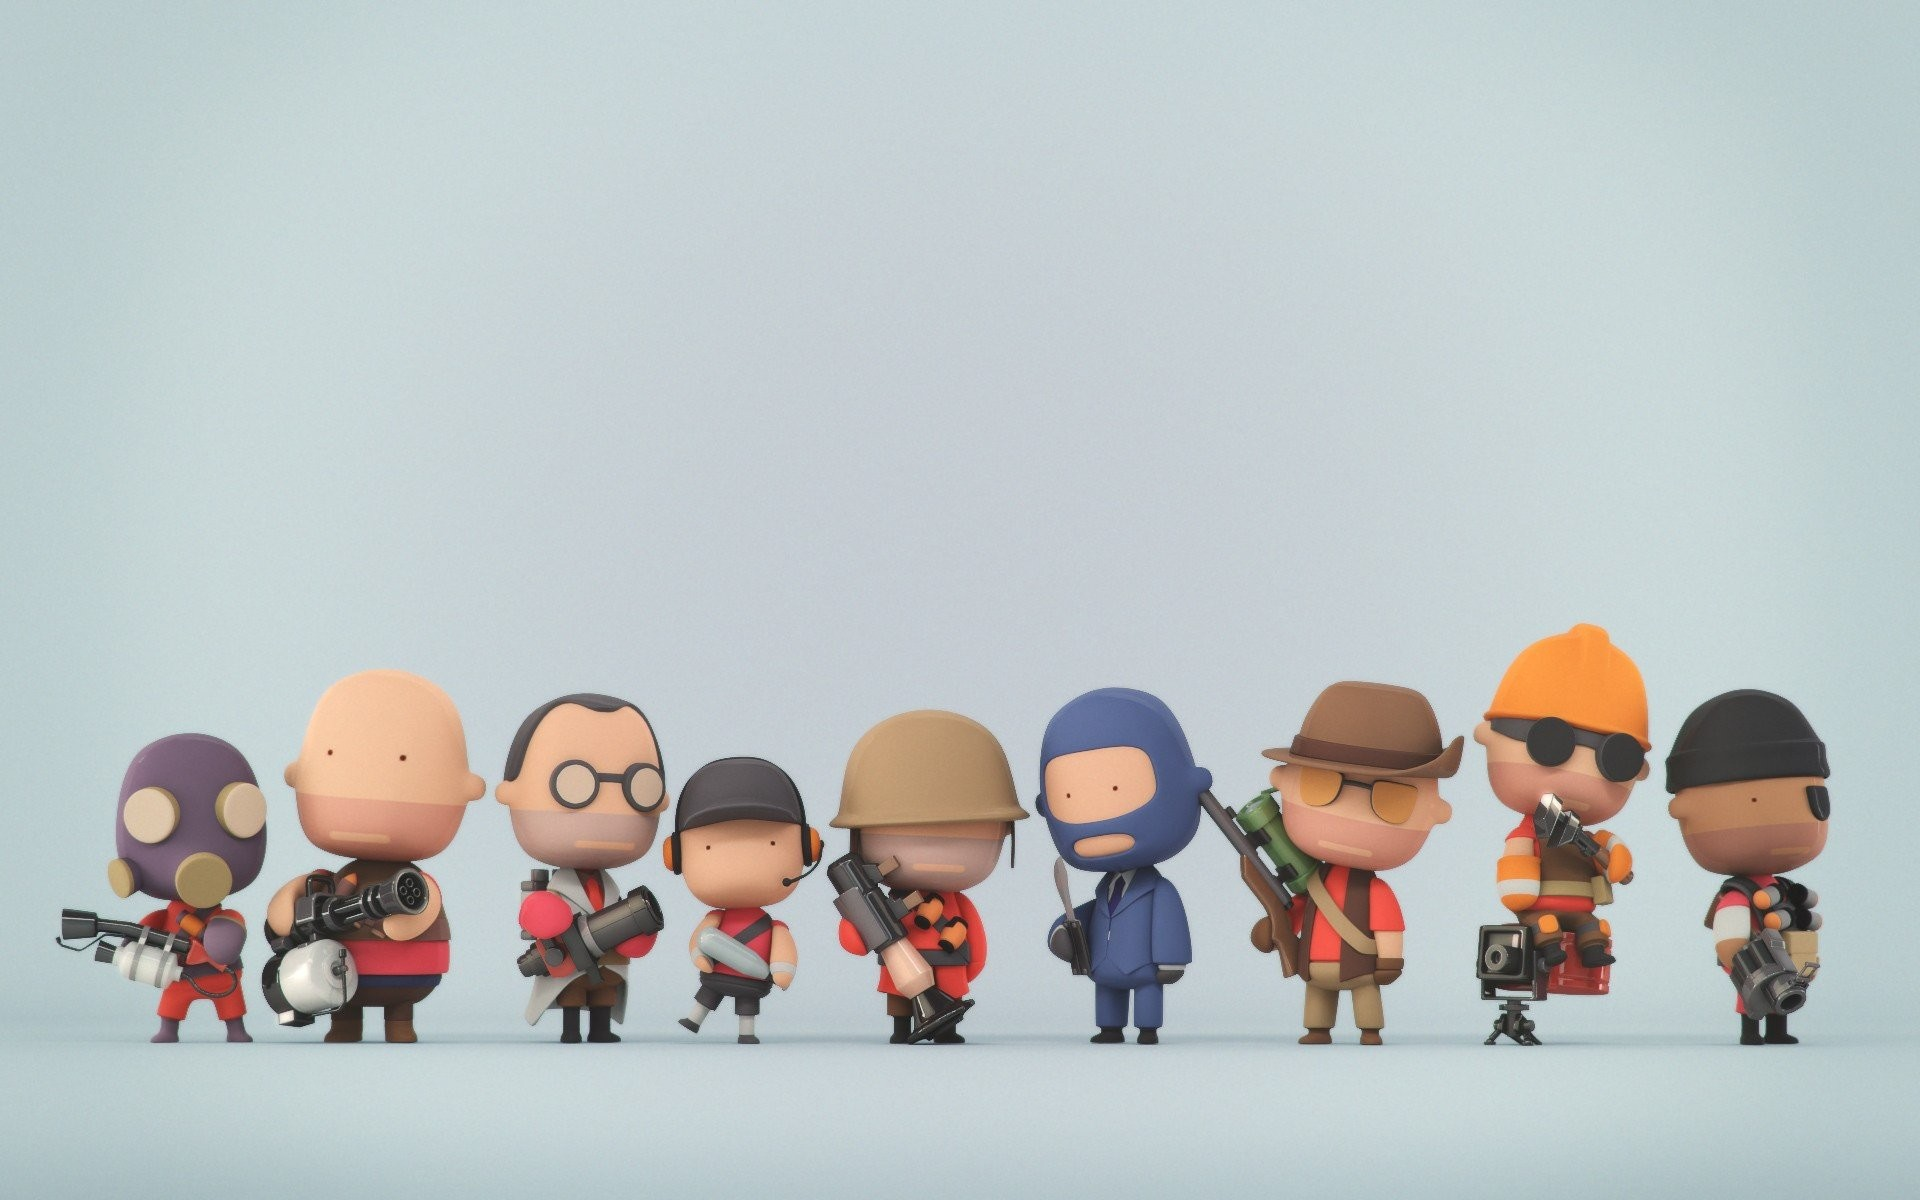 1920x1200 Heavy TF2 Engineer TF2 Pyro TF2 Spy TF2 Scout TF2 Medic TF2 sentry TF2  Demoman TF2 Team Fortress 2 Soldier TF2 Sniper TF2 wallpaper |  |  275504 | ...